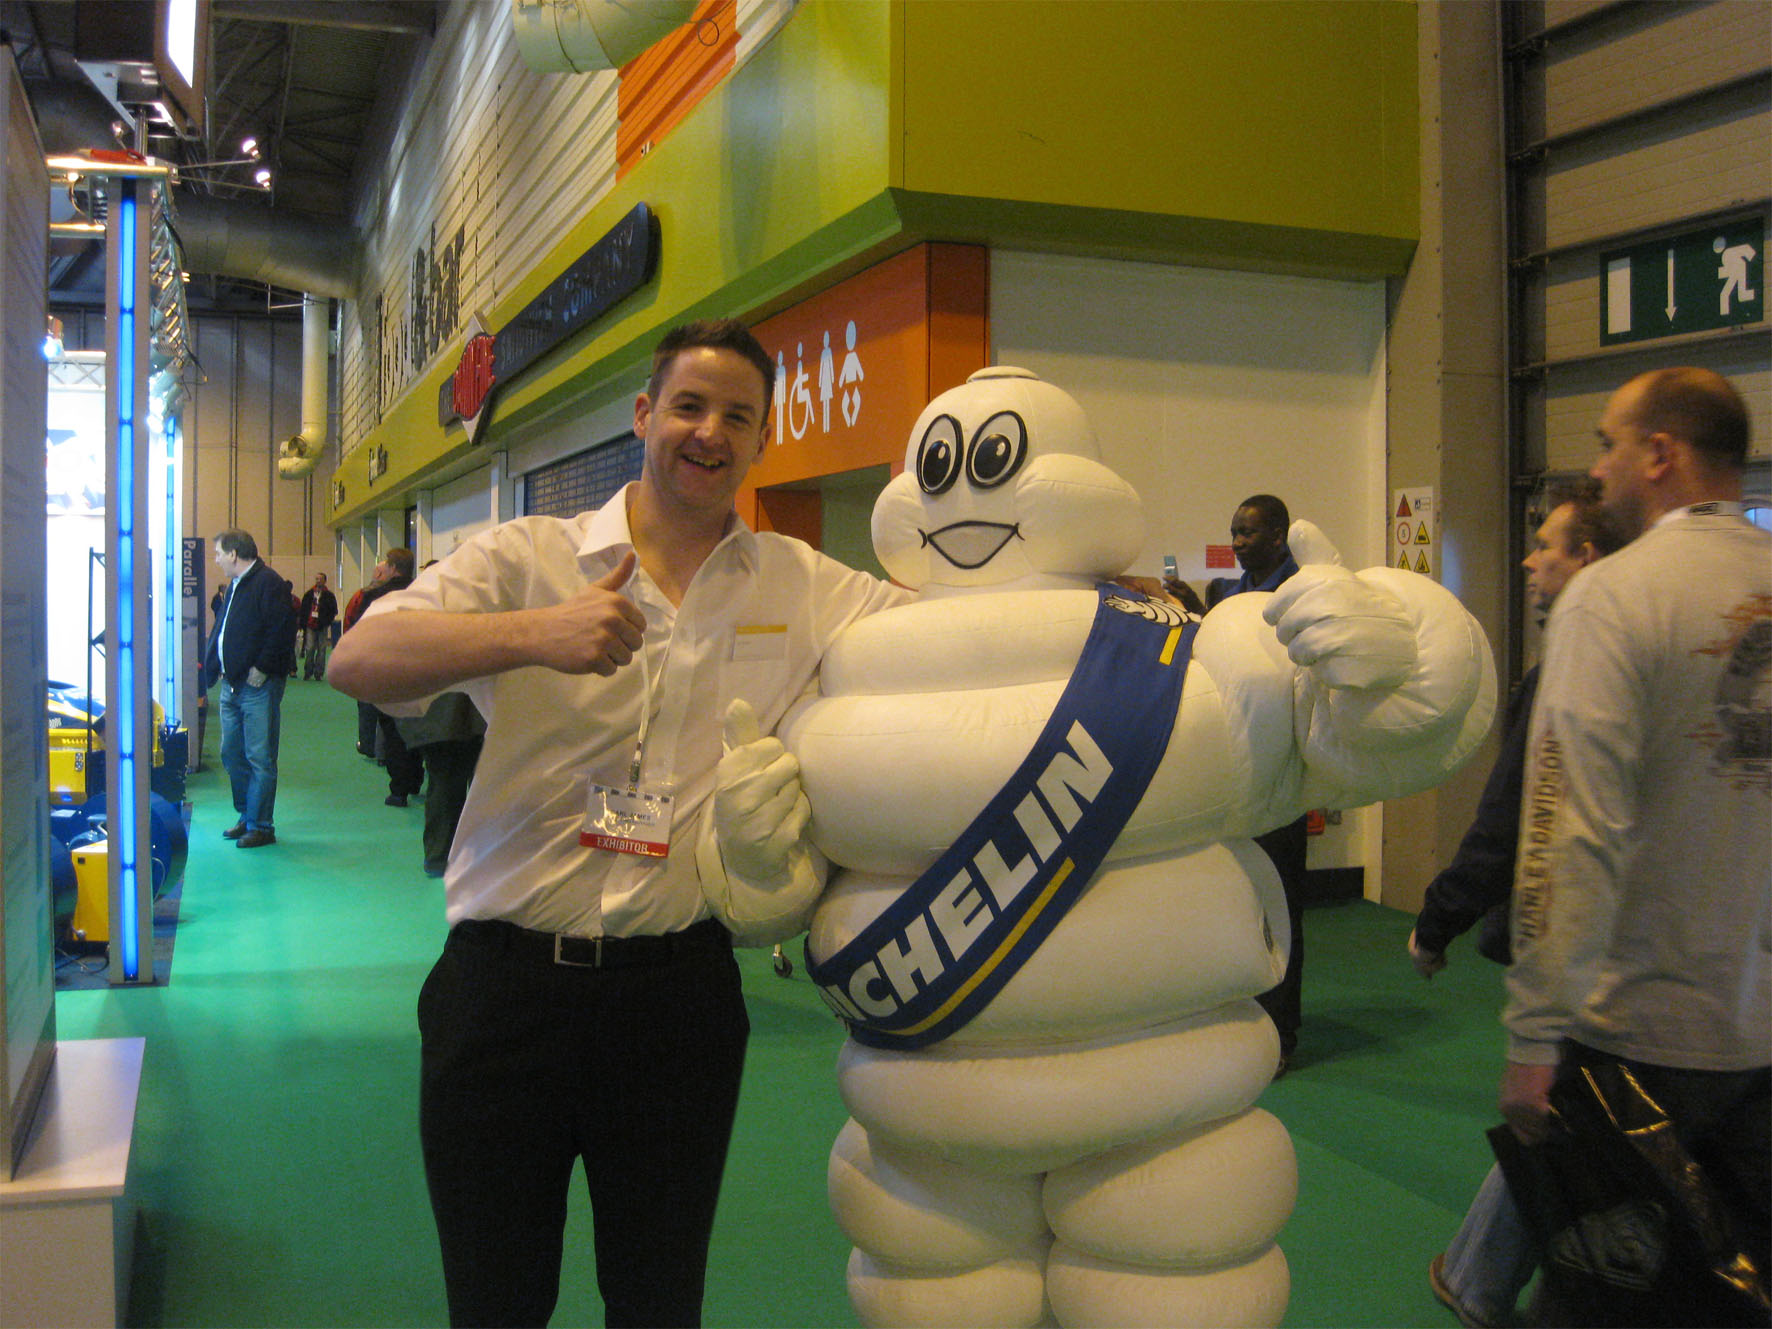 Spot the Michelin Man